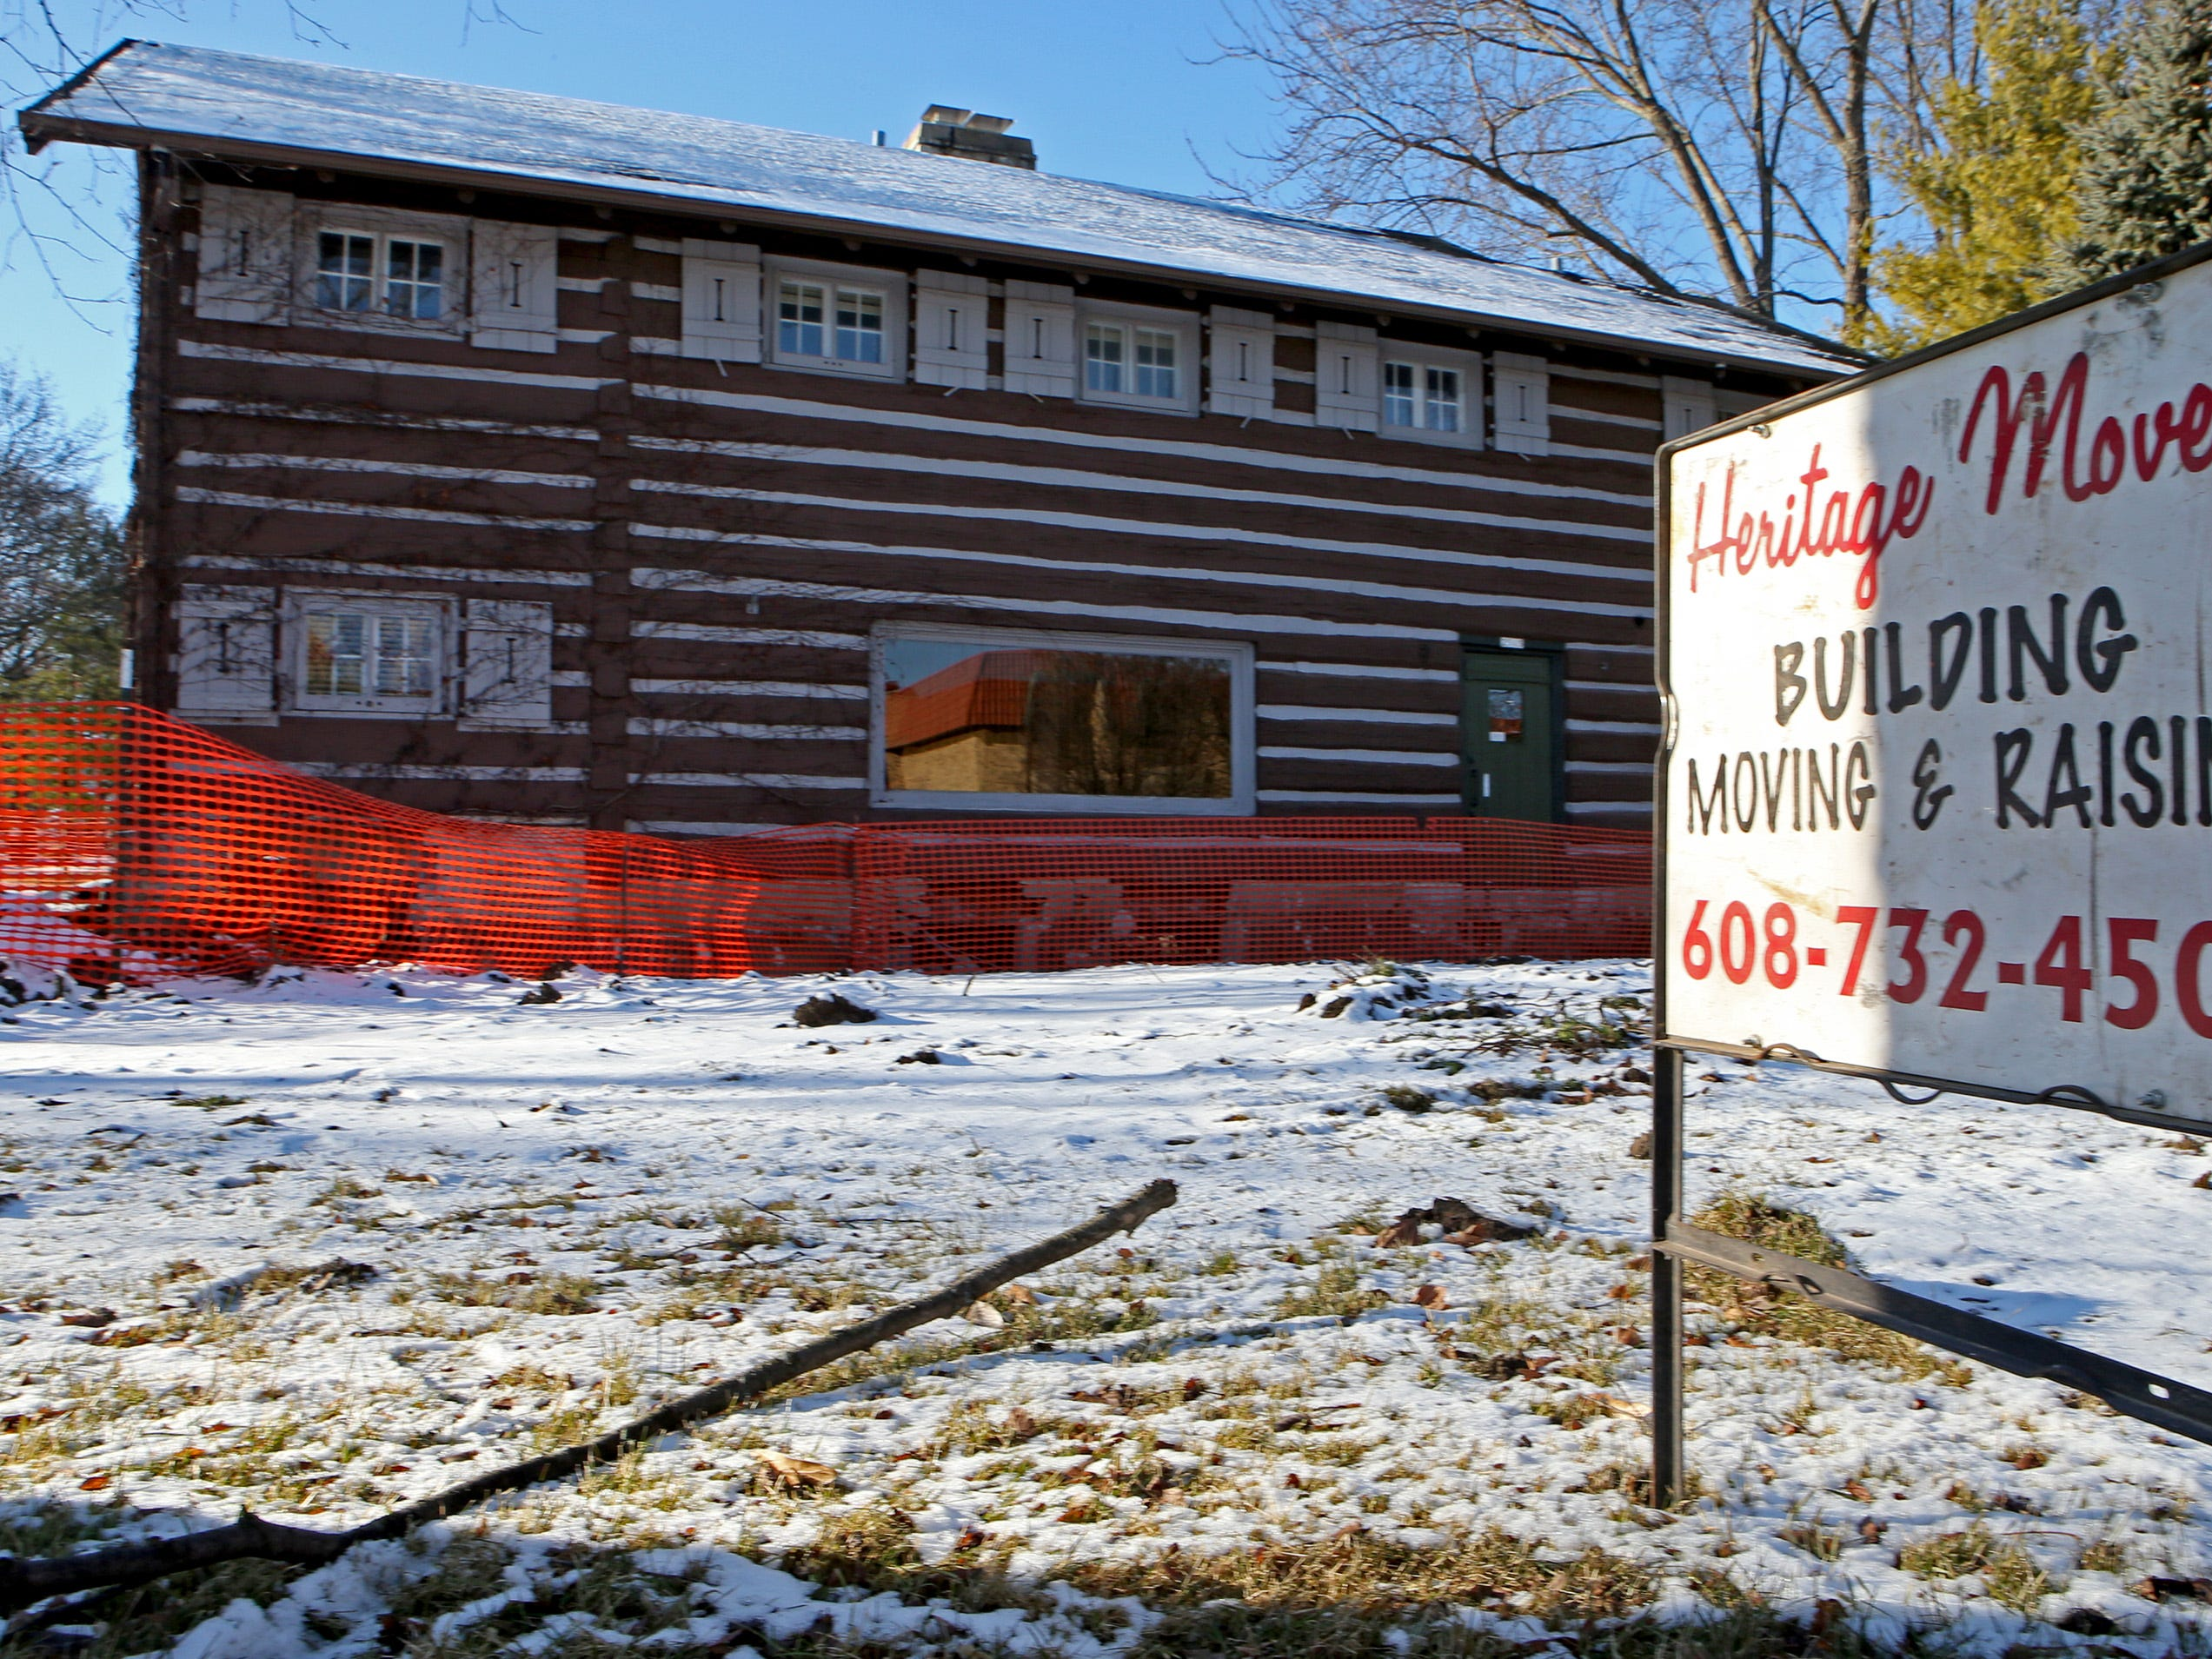 The Log Cabin at 2515 N. Wauwatosa Ave. is being prepared for a move to a site on the northwest corner of North Avenue and 64th Street. A planned Jan. 9 move has been postponed.